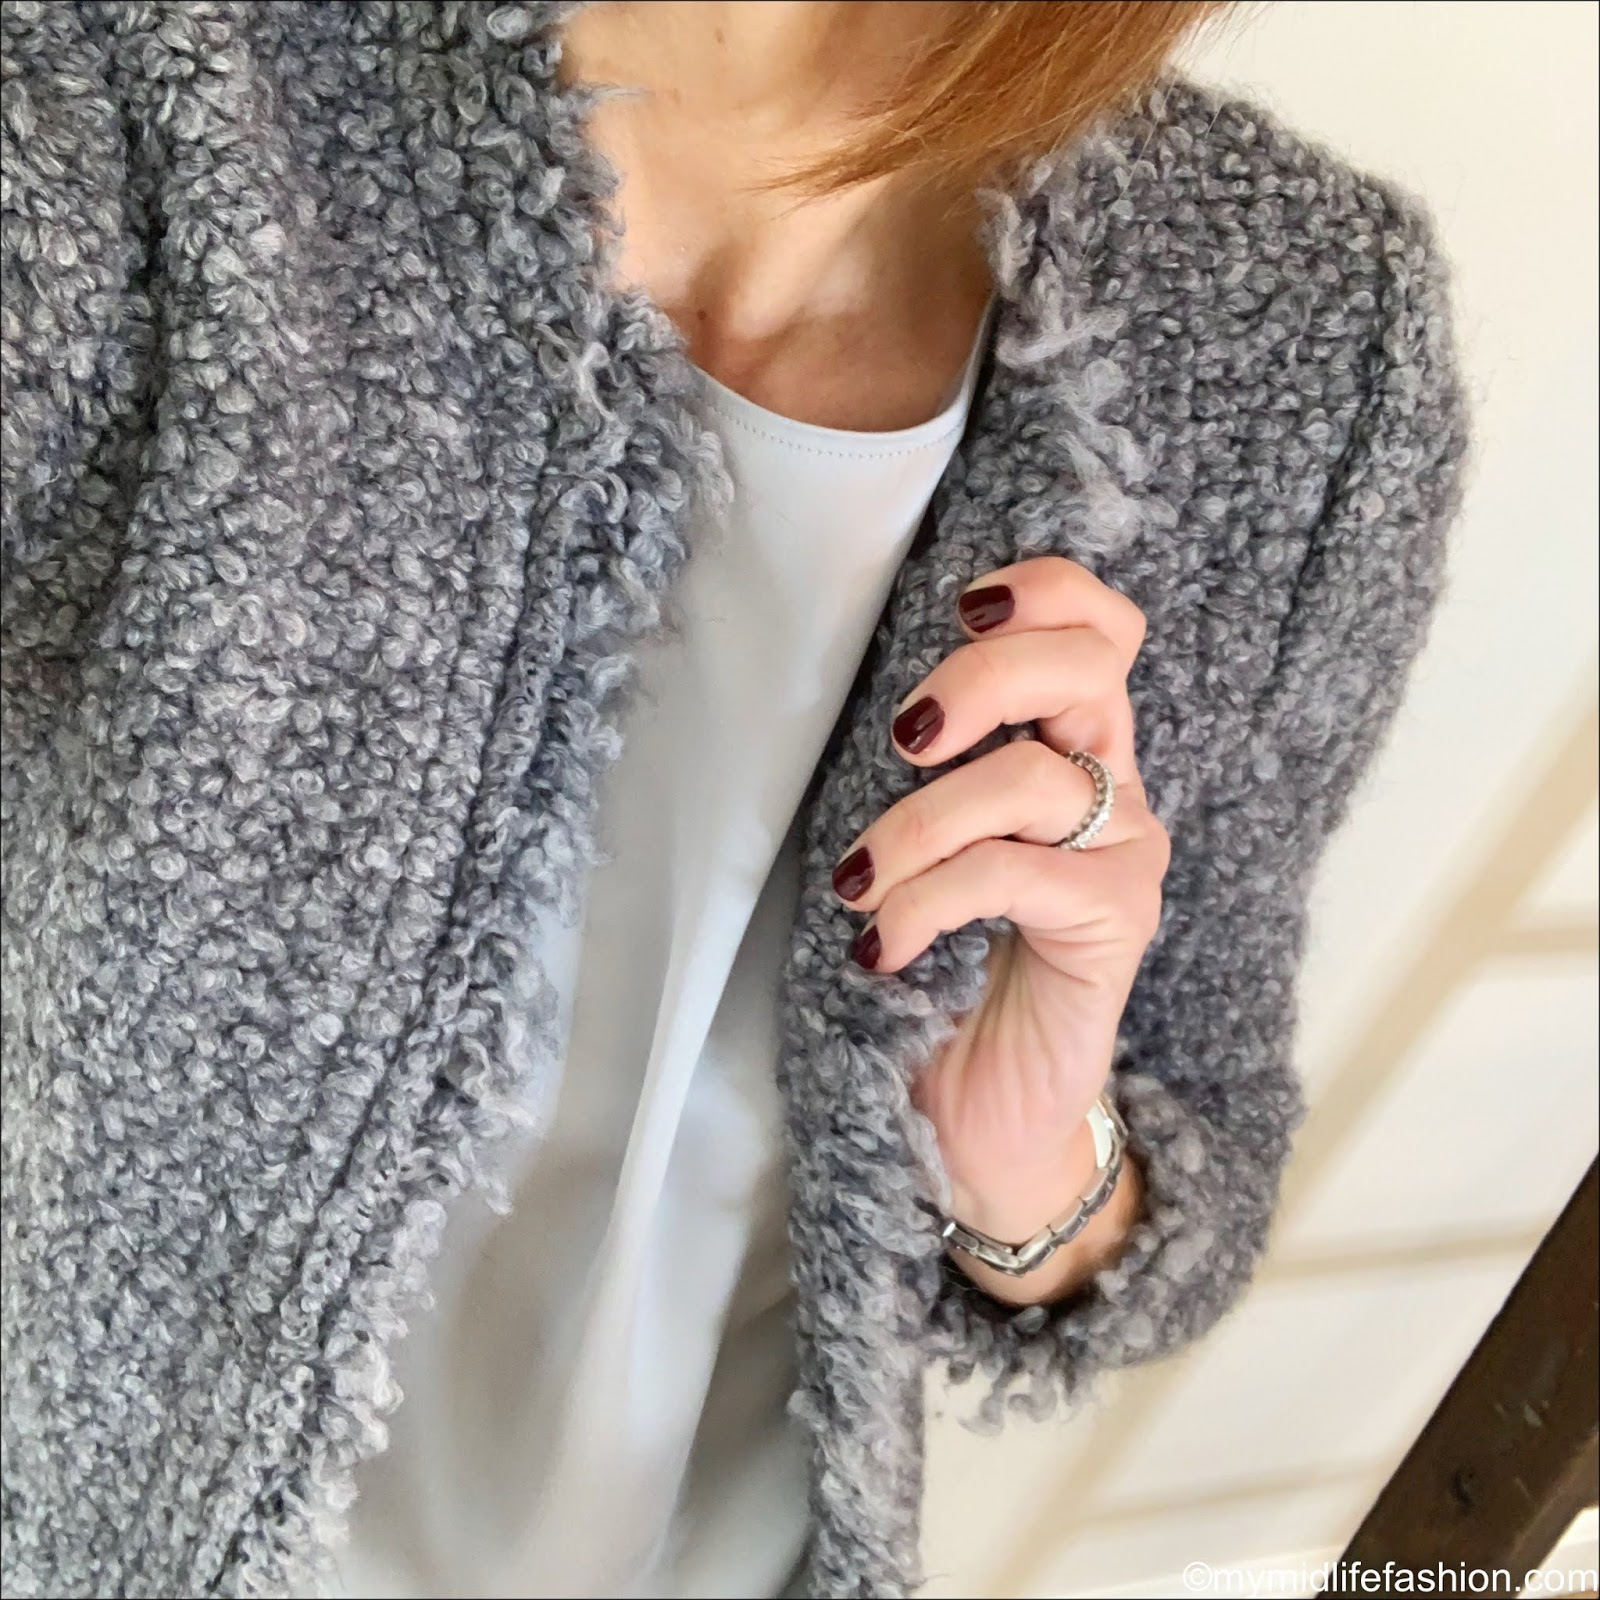 my midlife fashion, iro knitted jacket, marks and spencer pure silk round neck short sleeve shell top, j crew distressed jeans, j crew suede pointed tassel flats